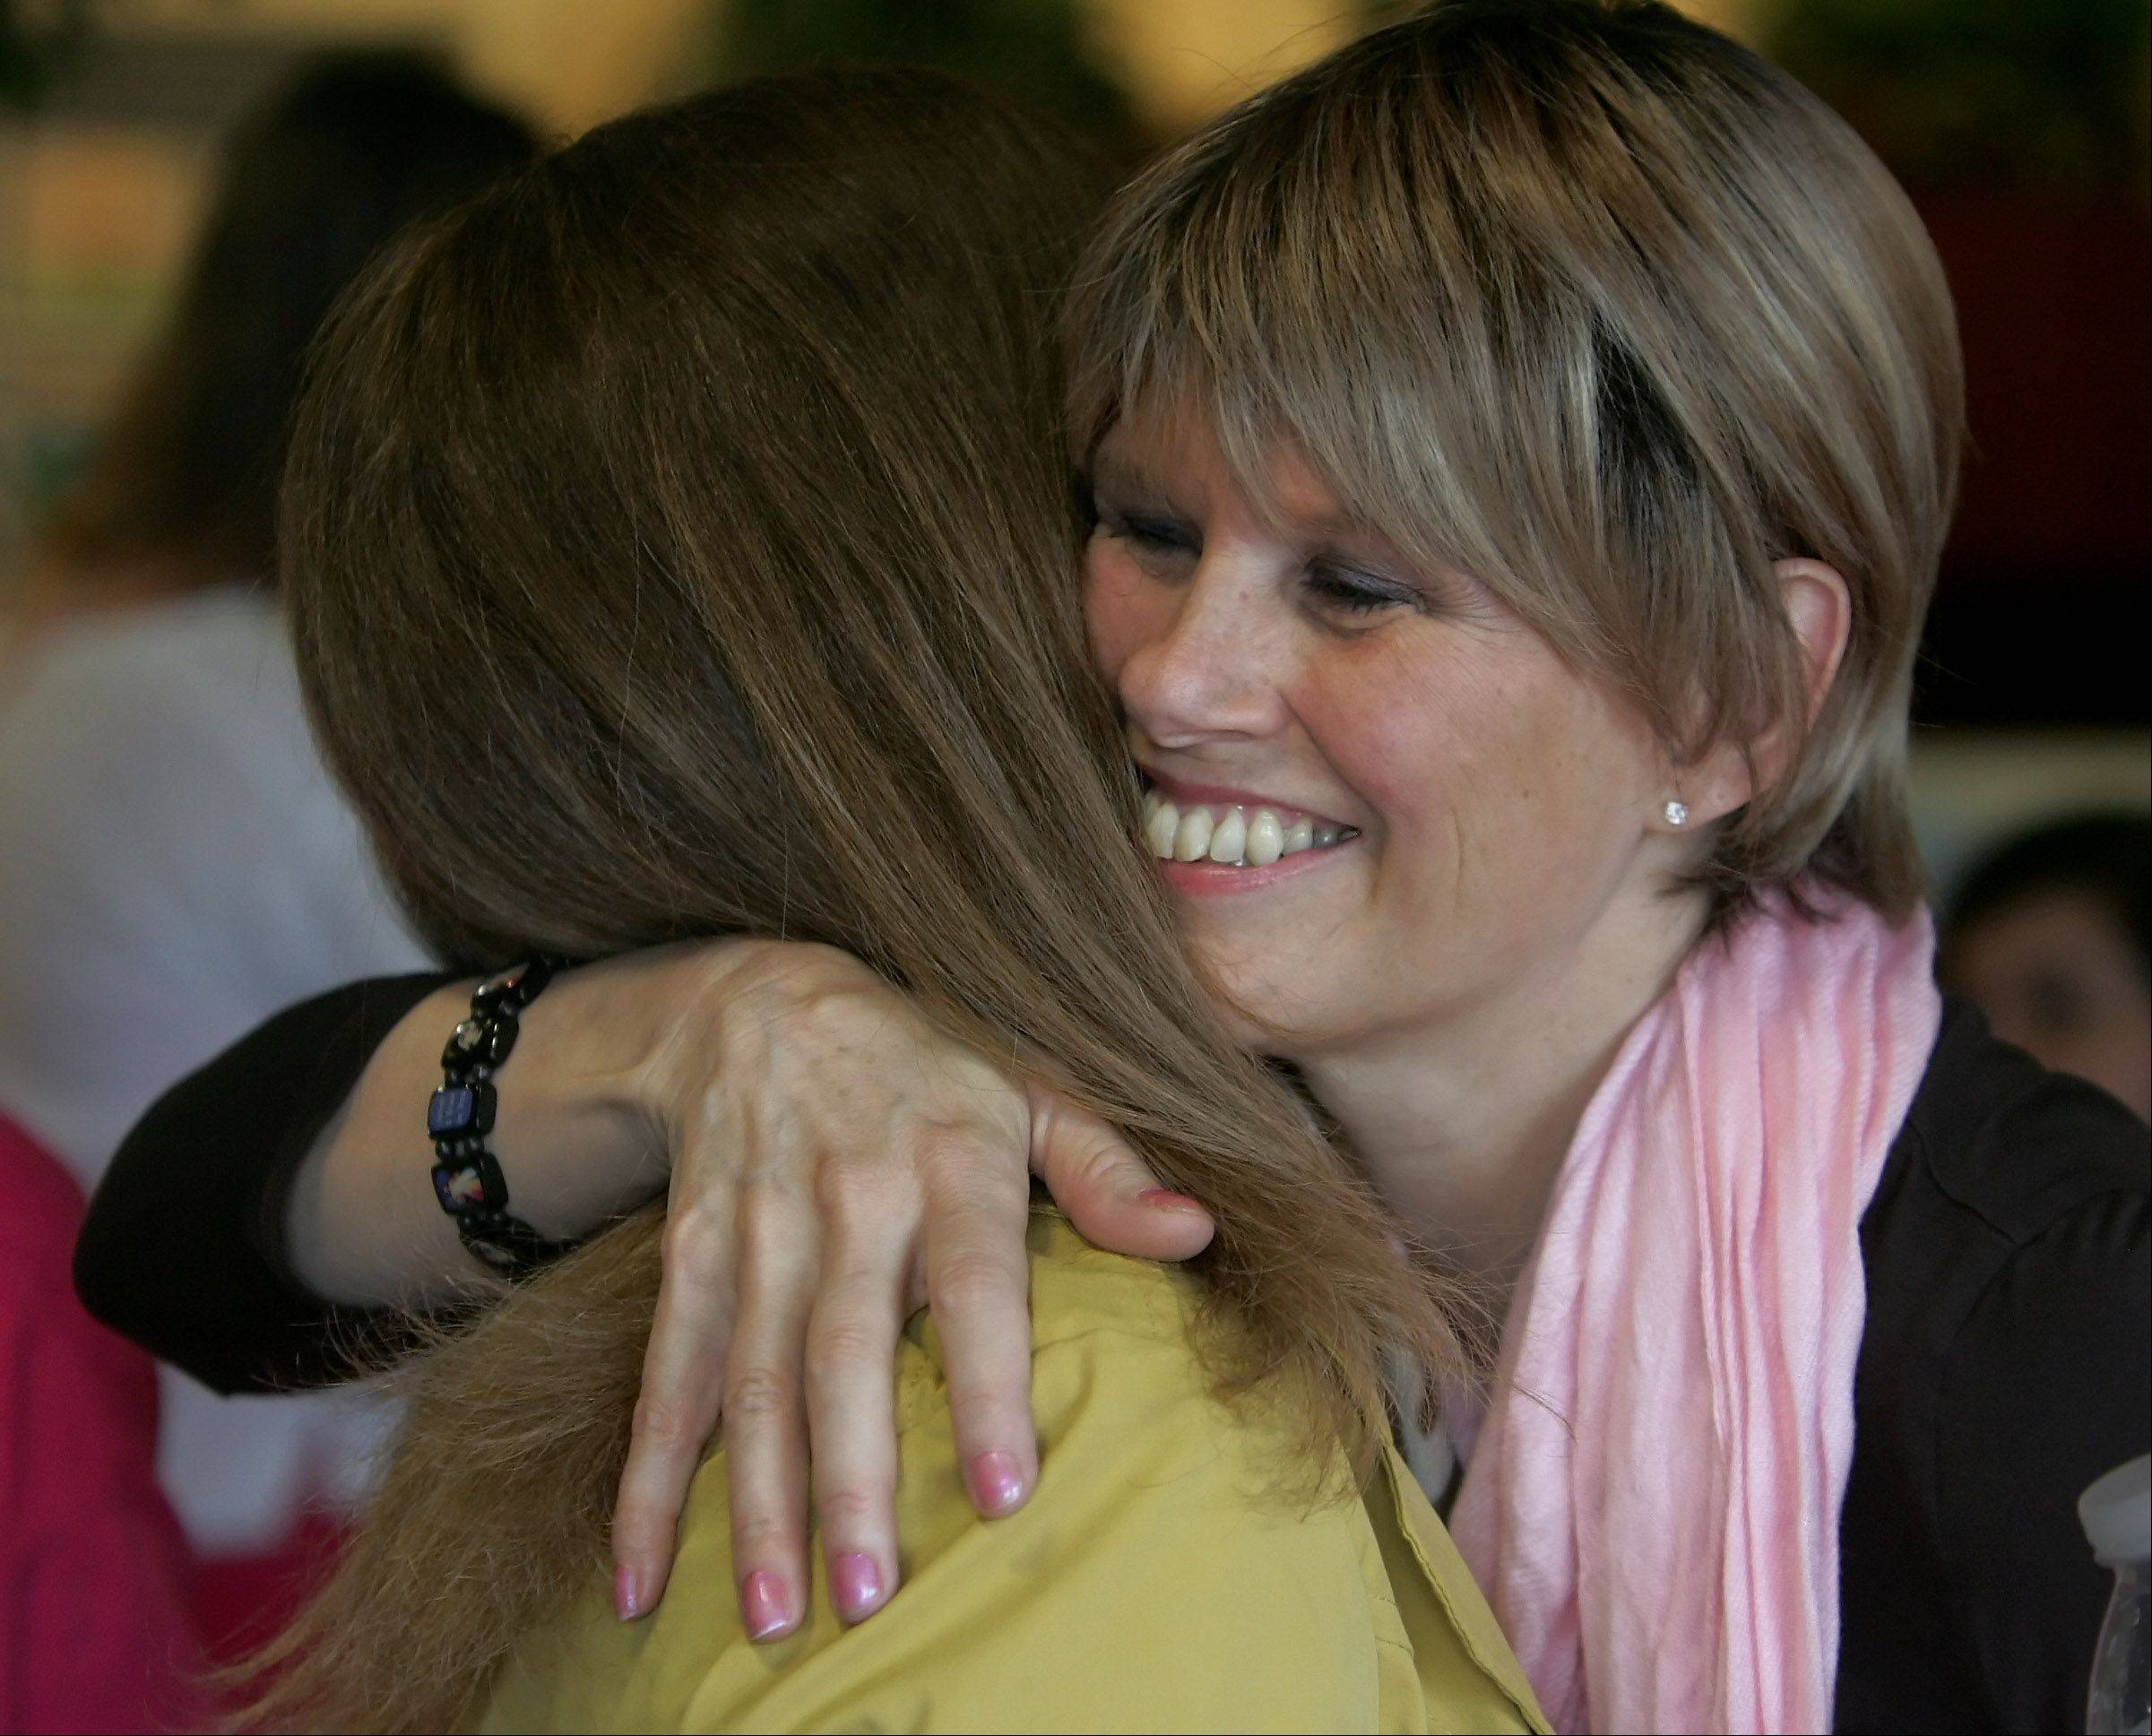 Linda Frahm receives a hug from her friend Michele Logar during the Haircuts For Hope fundraiser Sunday at Halo Hair & Nails in Mount Prospect to benefit Frahm, who is battling cancer. Frahm is a teacher at Lions Park Elementary School in Mount Prospect.